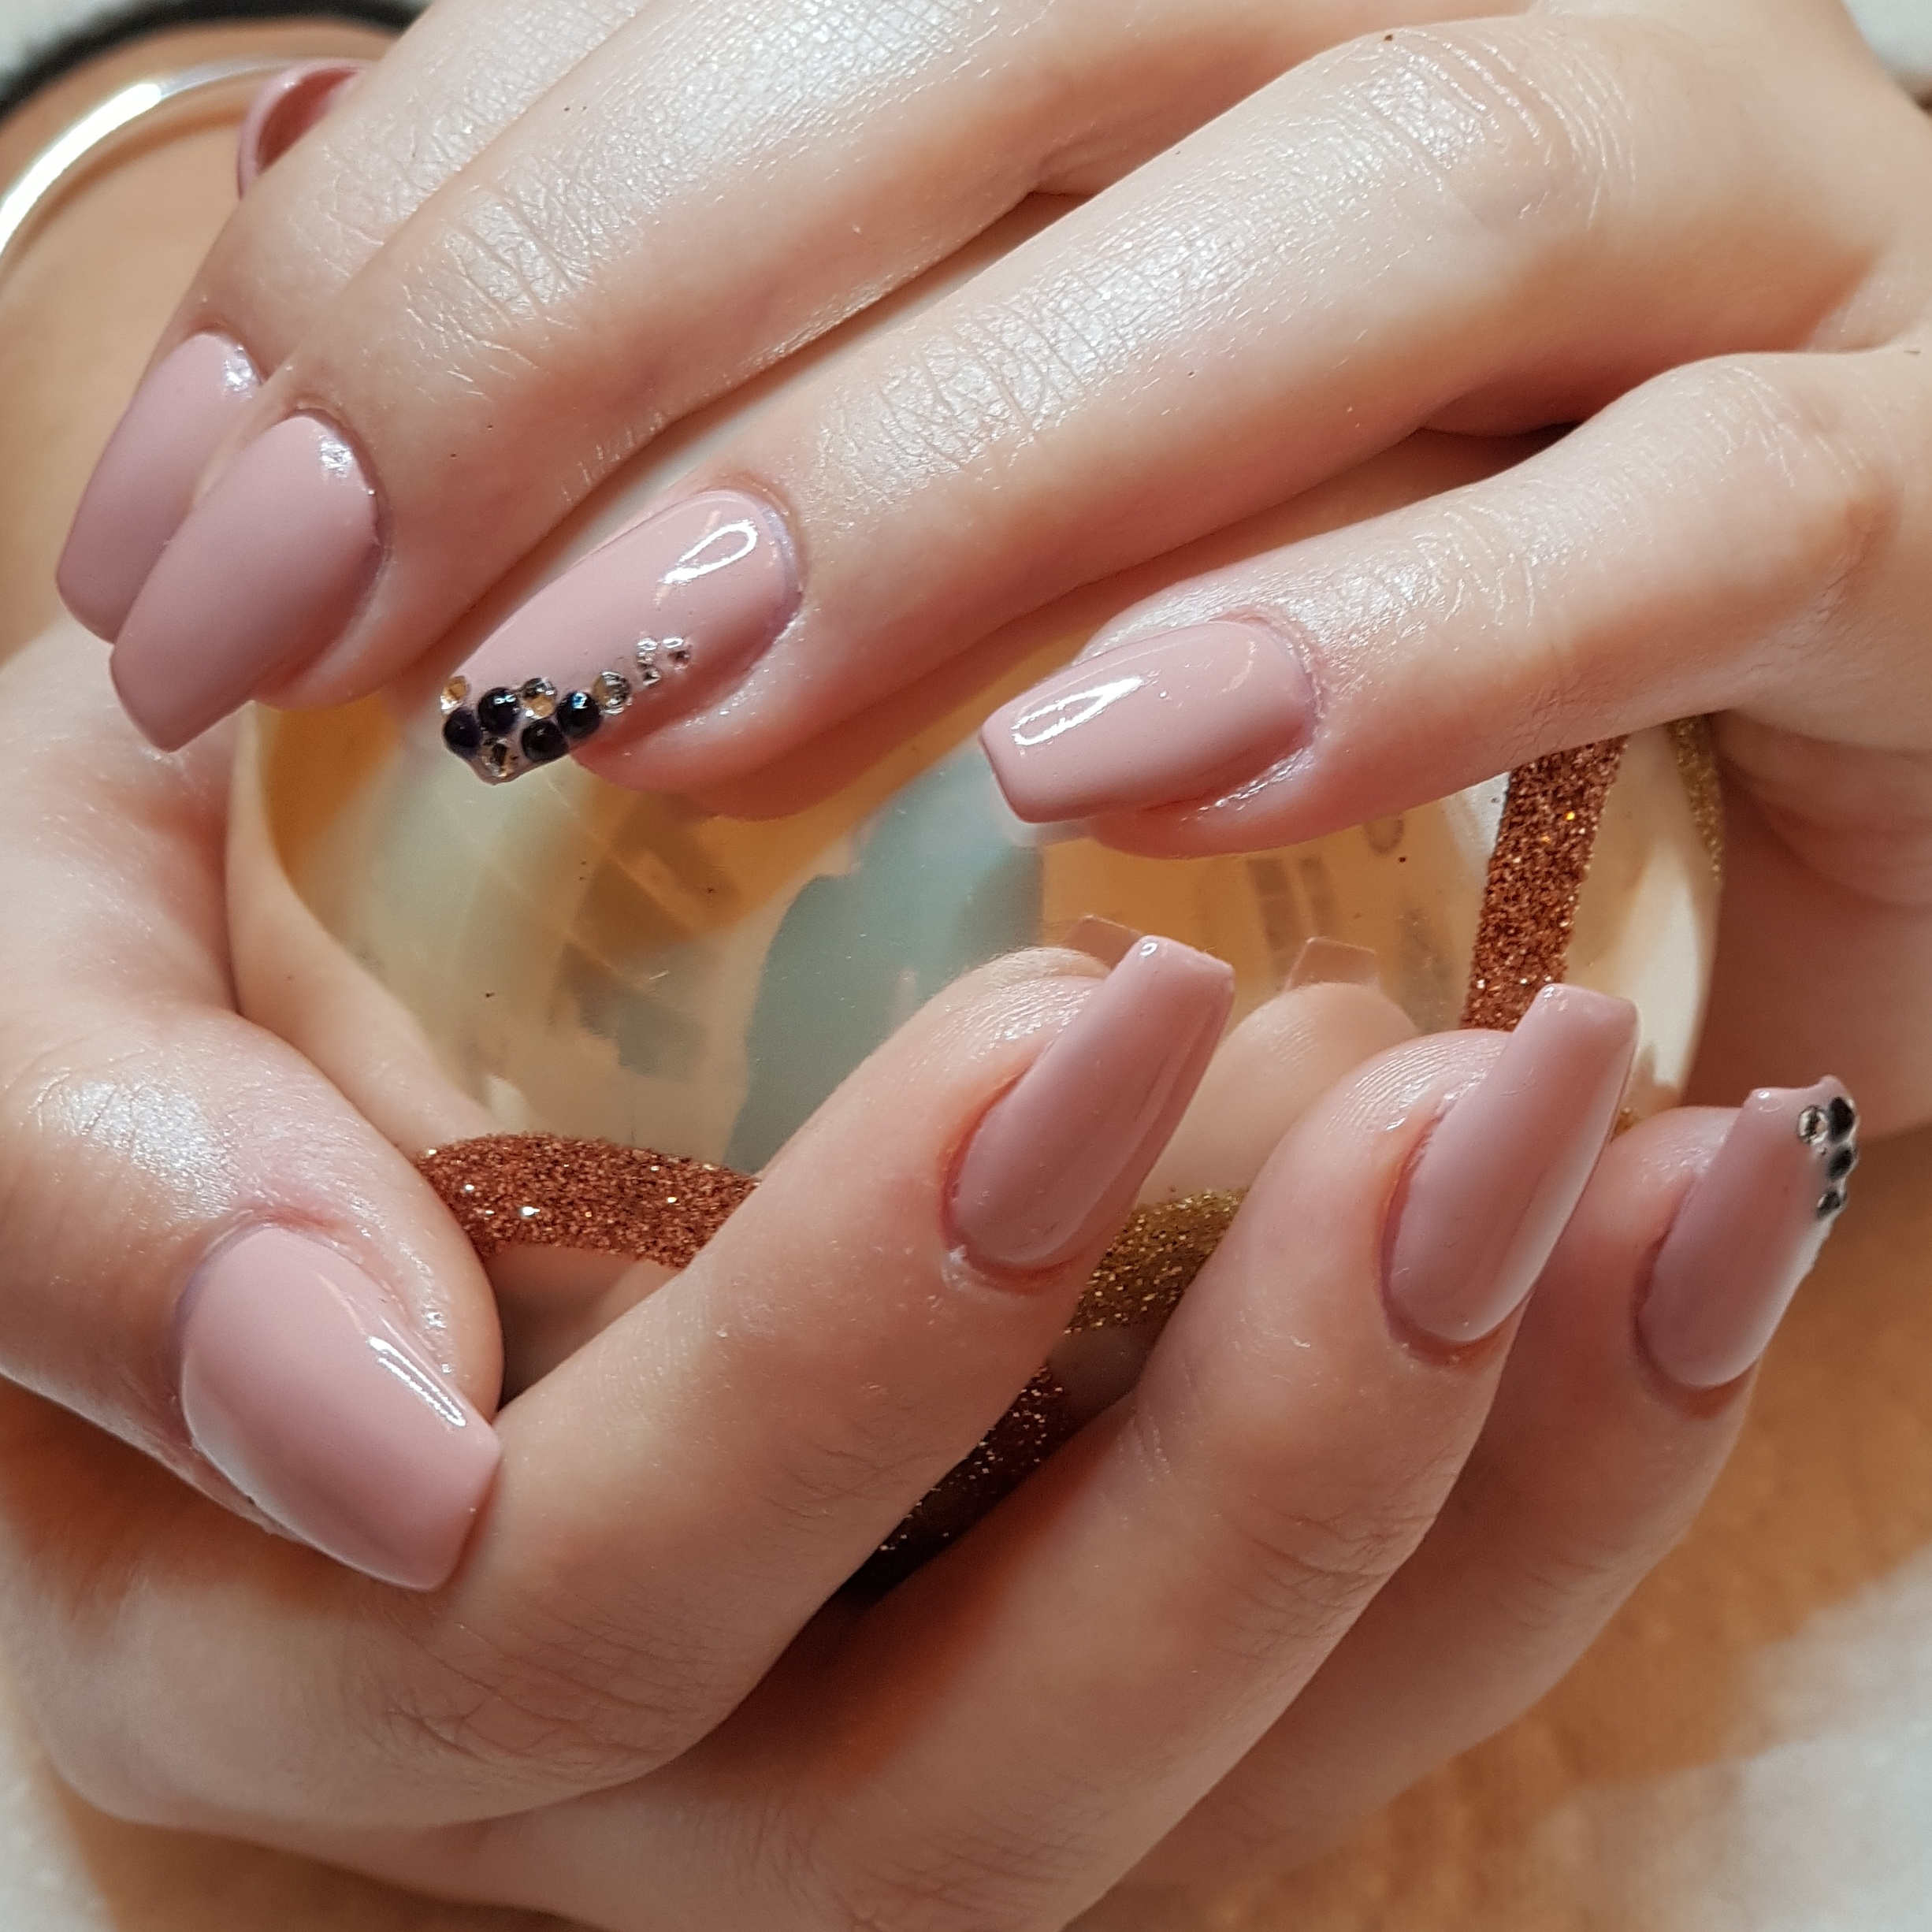 Nageldesign Weiß Nagelstudio Lörrach Basel Rheinfelden Nagelstudio Nageldesign